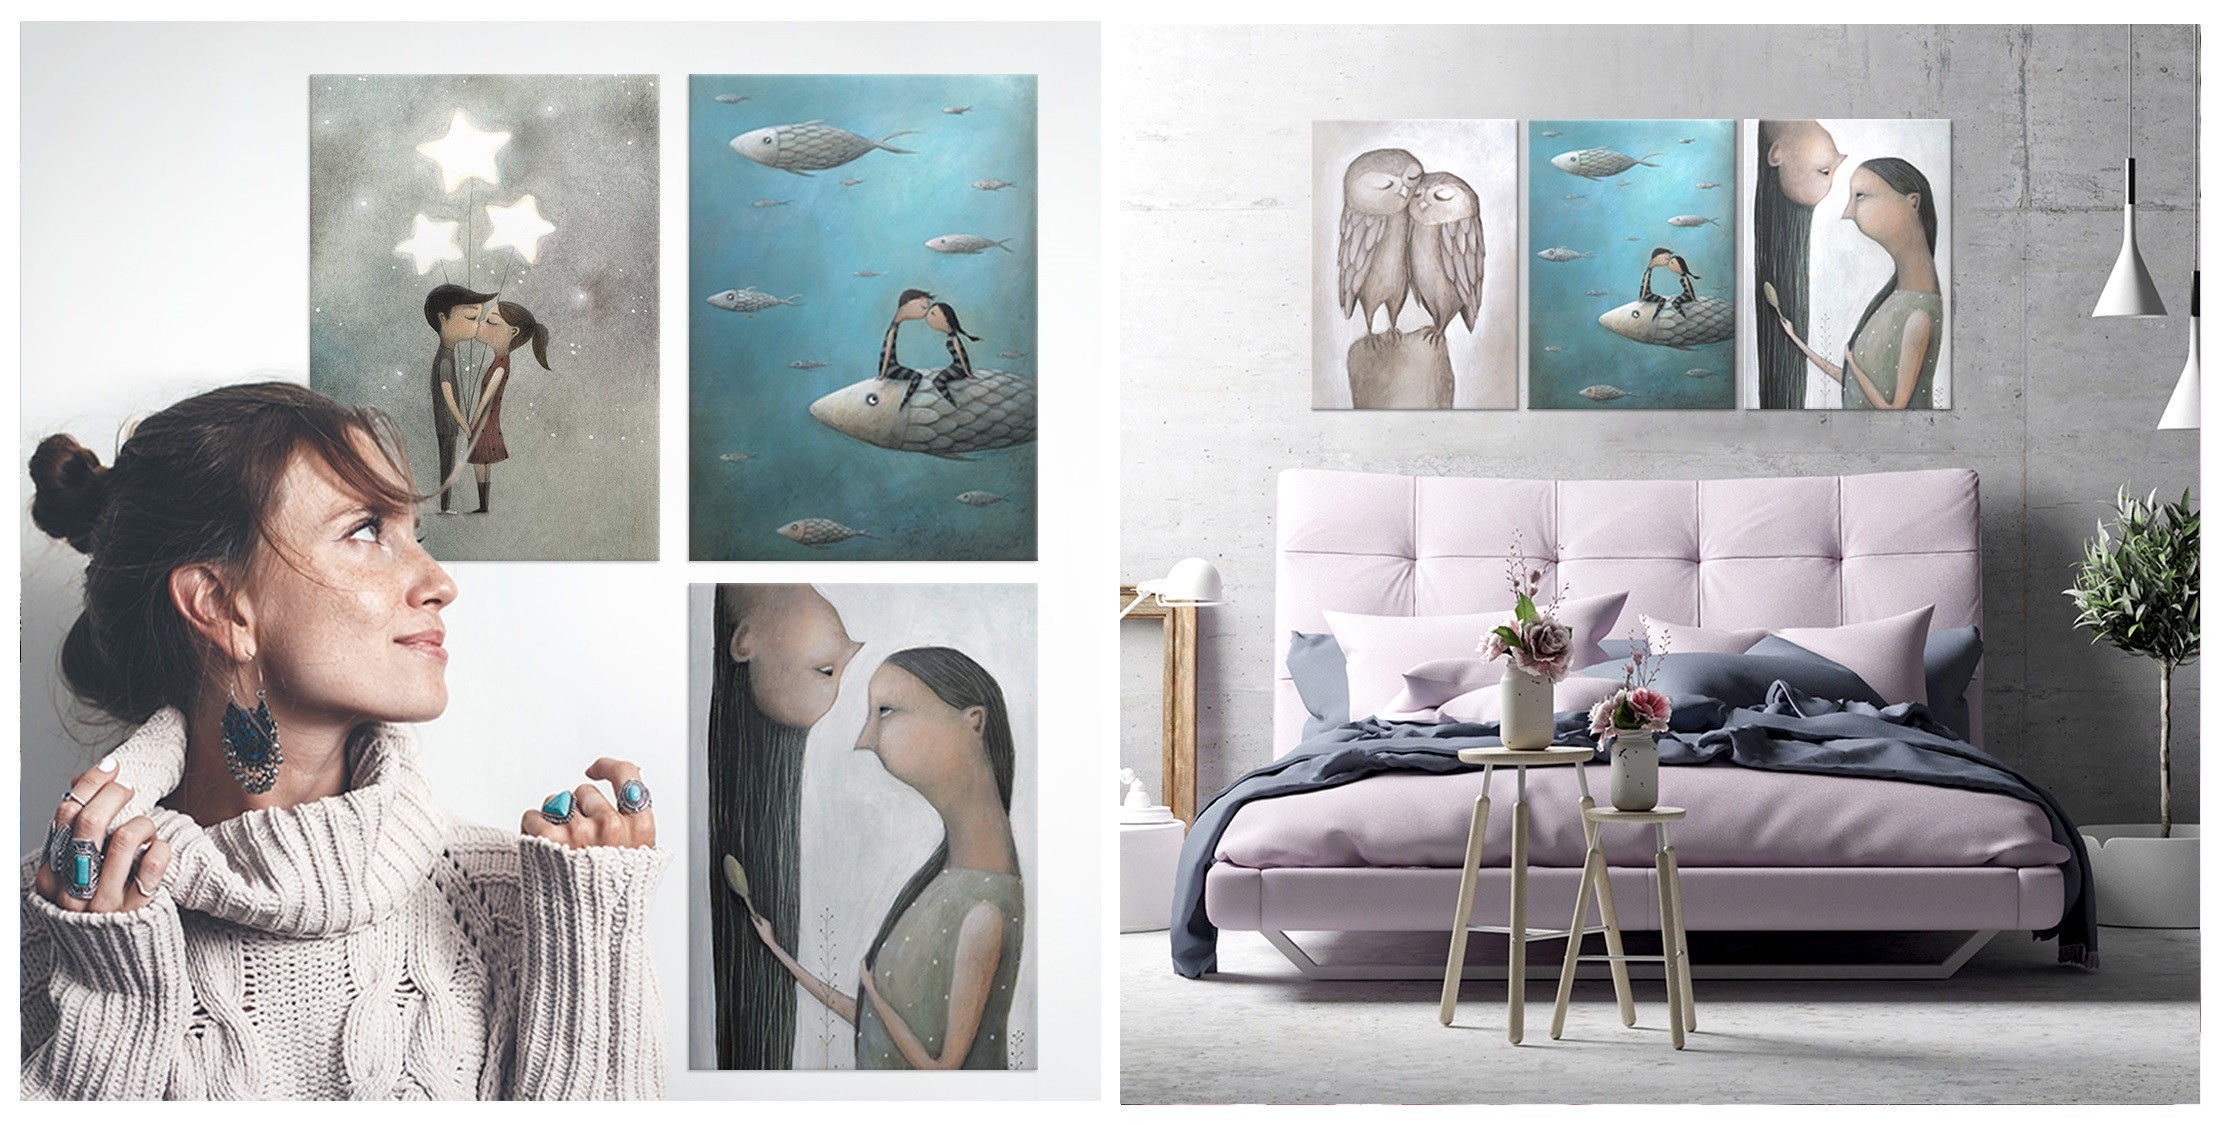 romantic artworks printed on metal posters gift ideas for girls